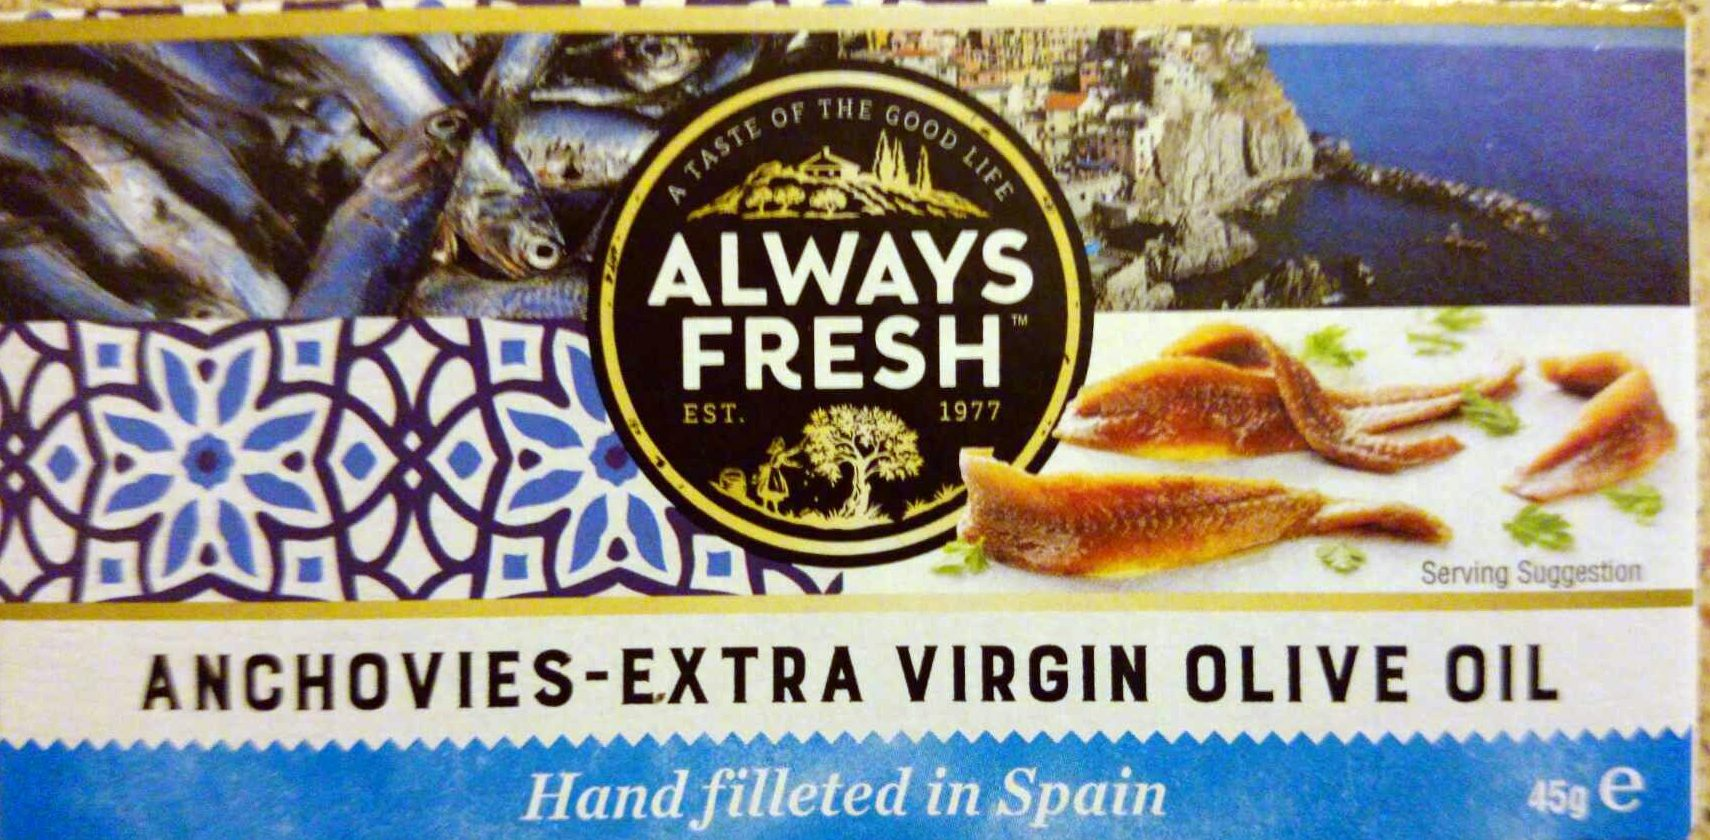 Anchovies - Extra Virgin Olive Oil - Product - en